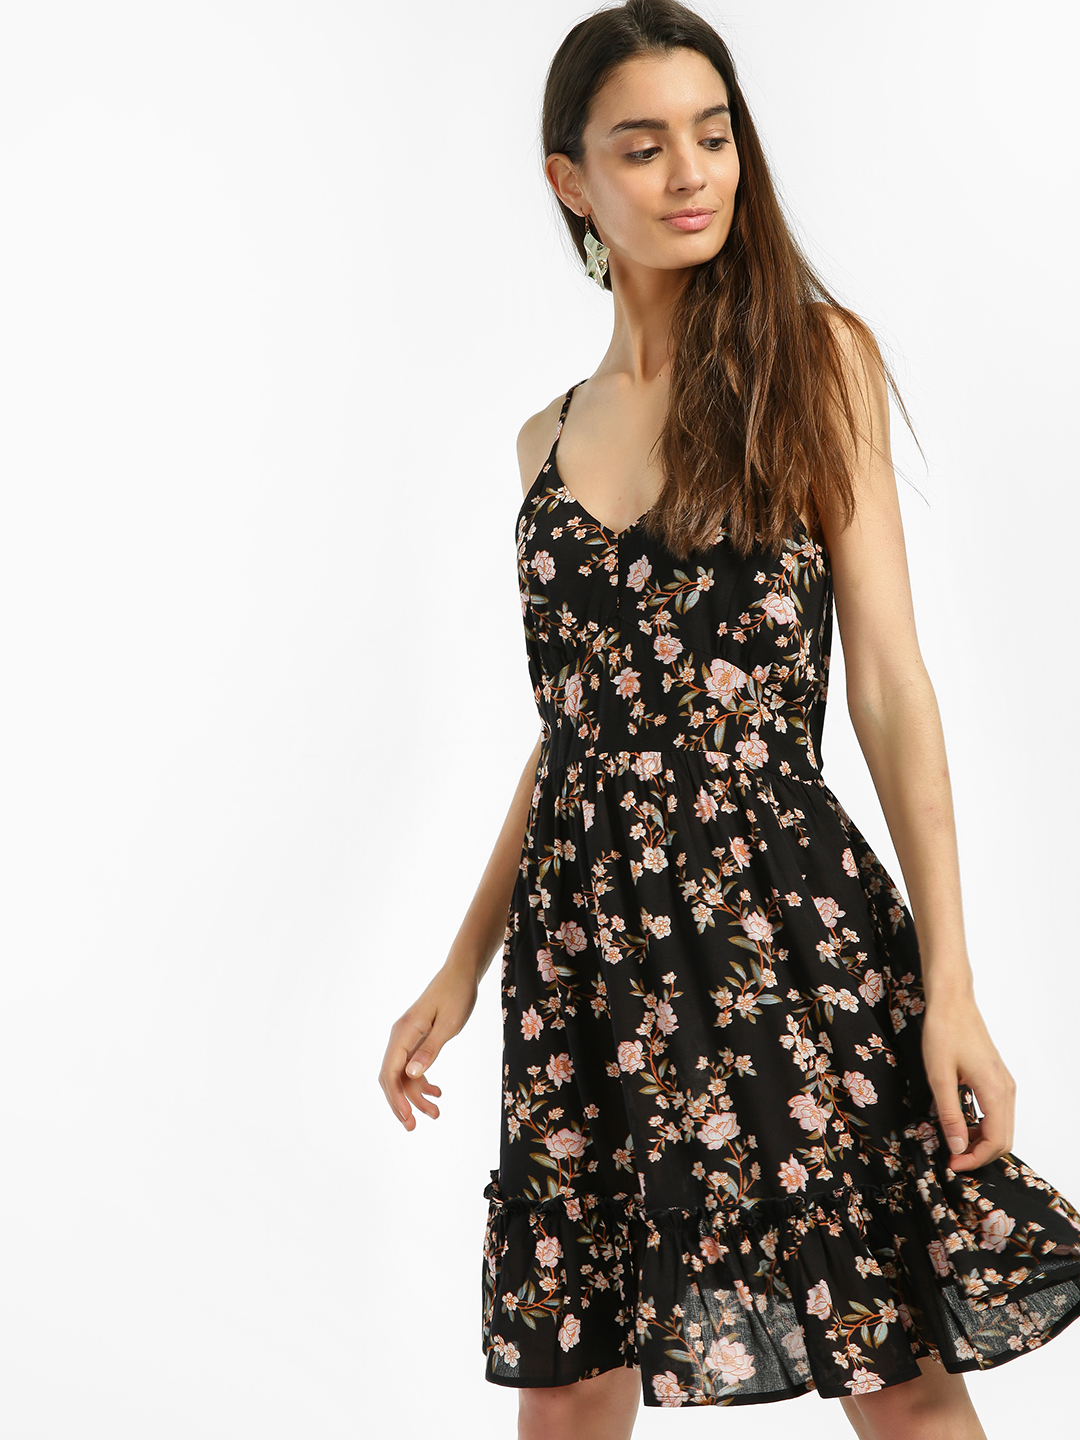 Miaminx Black Floral Print Skater Dress 1